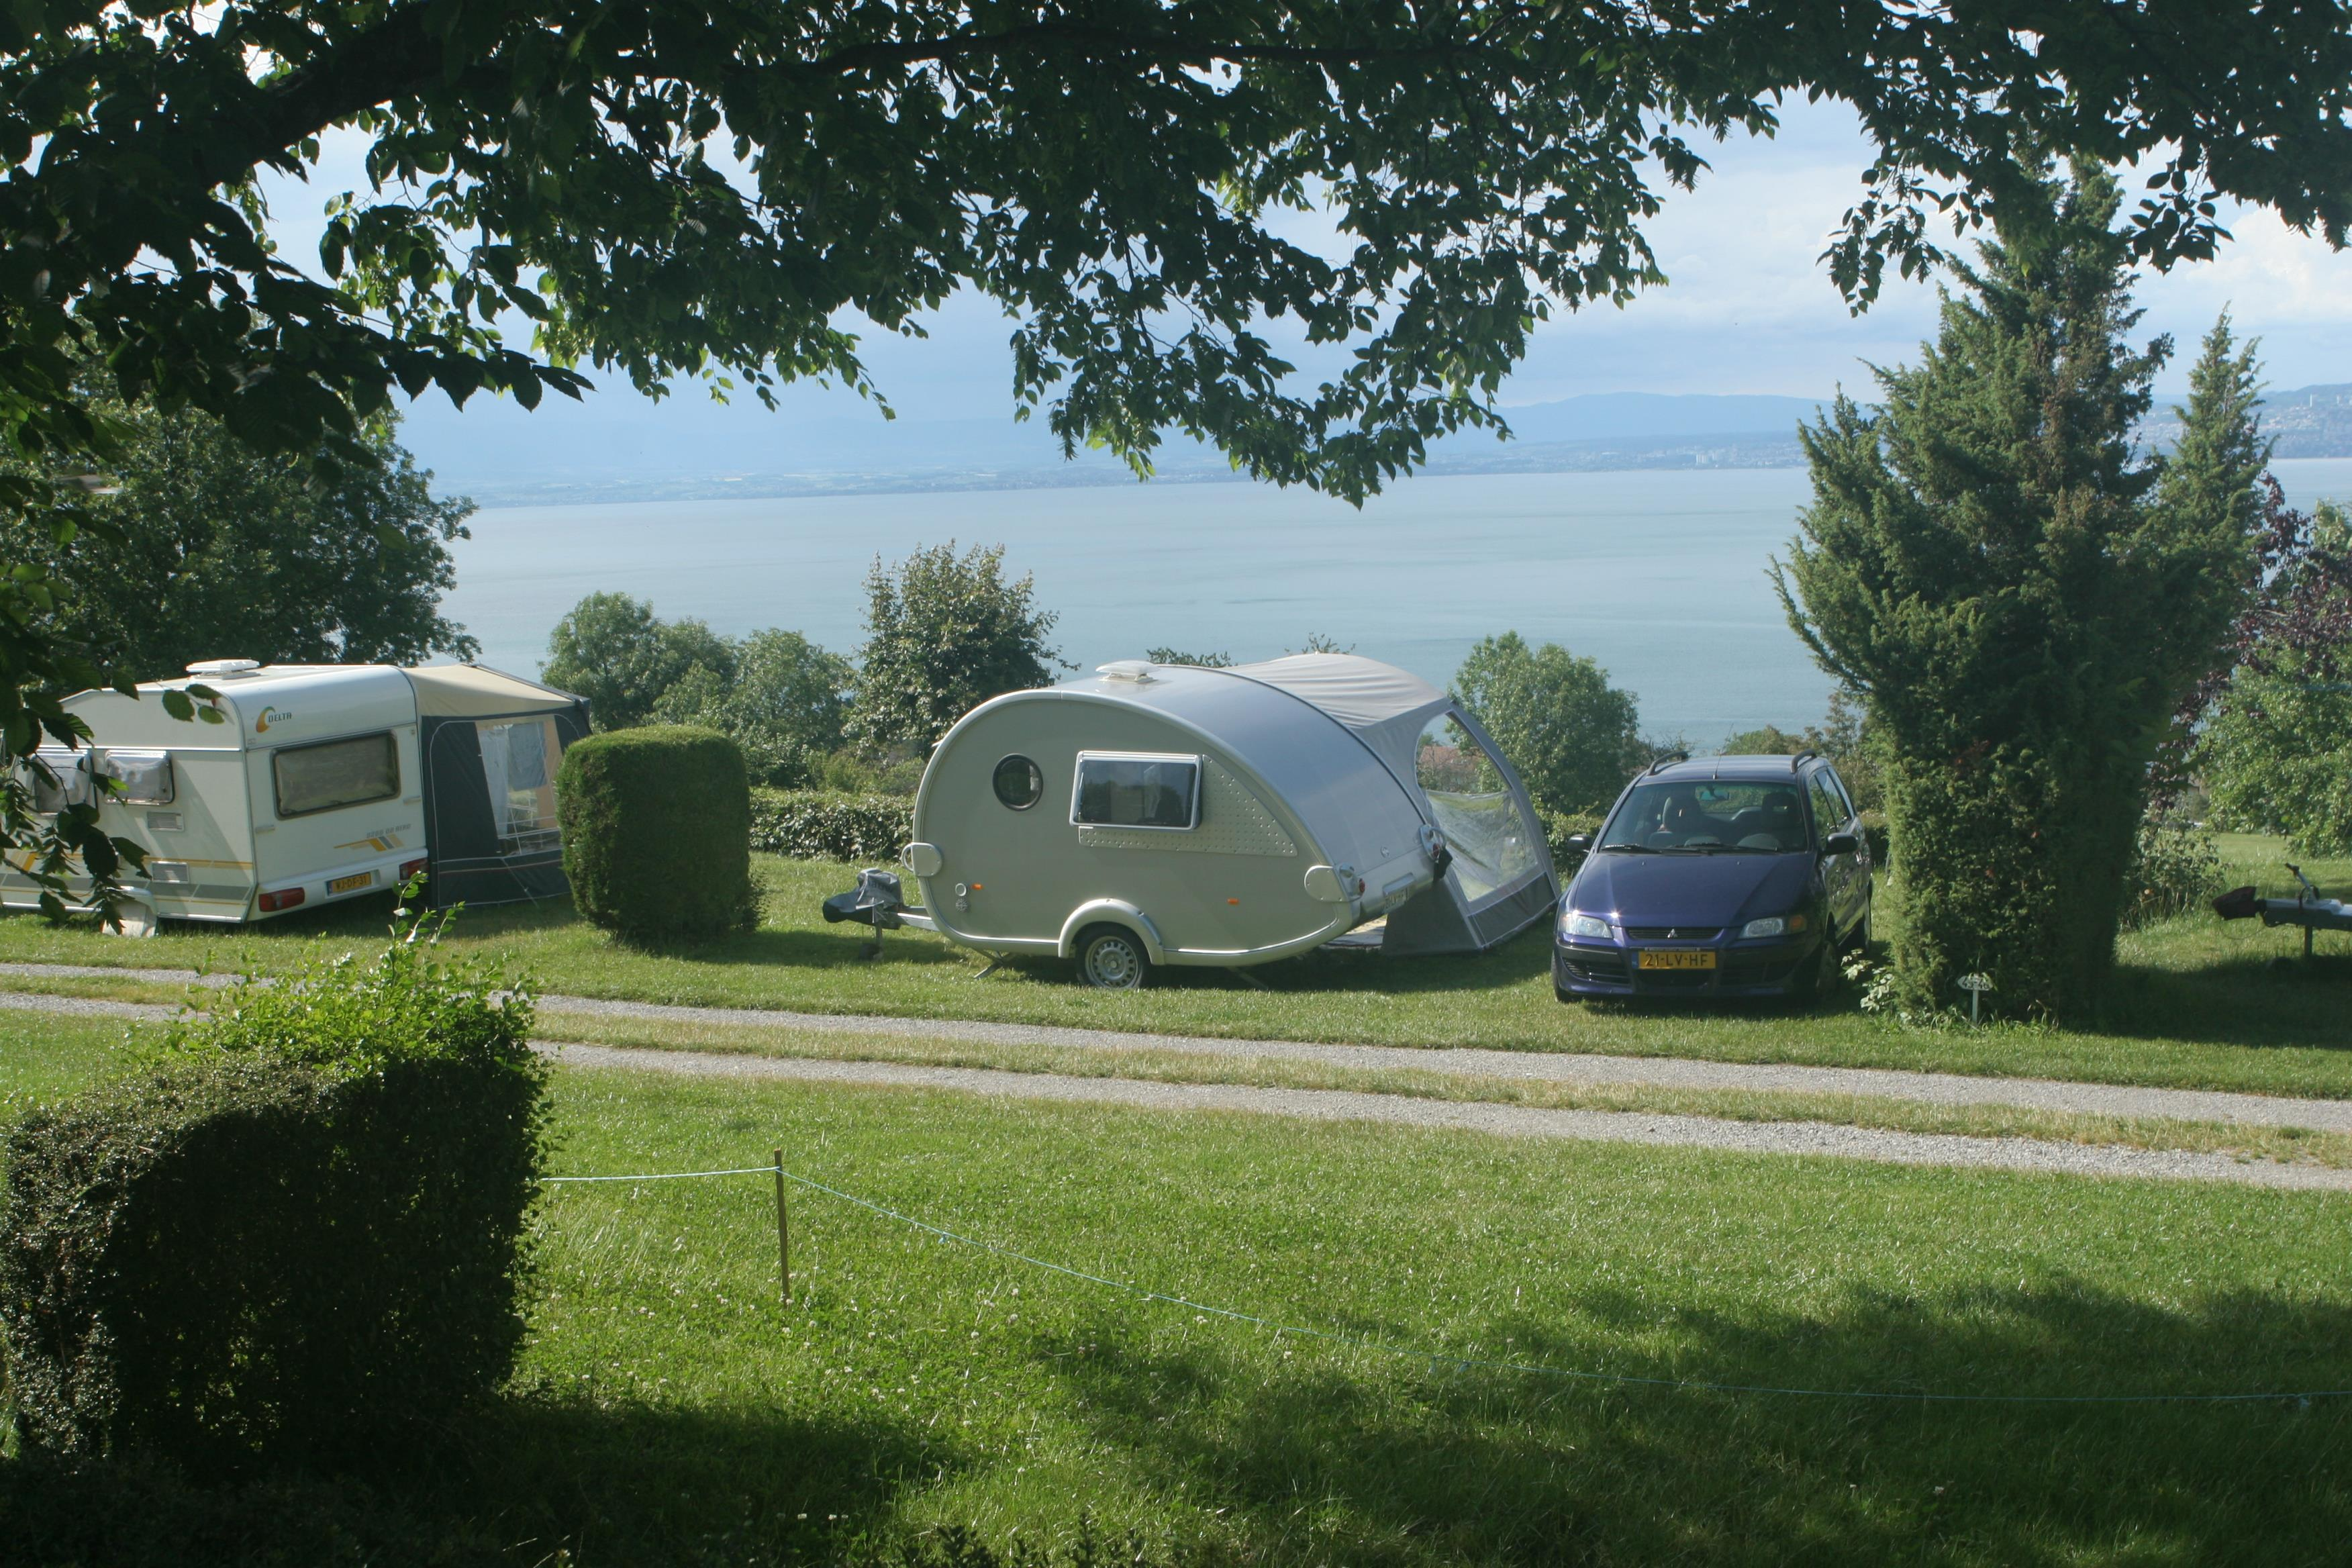 Pitch - Camping-Place For Caravan Or Motorhome - Camping Les Myosotis